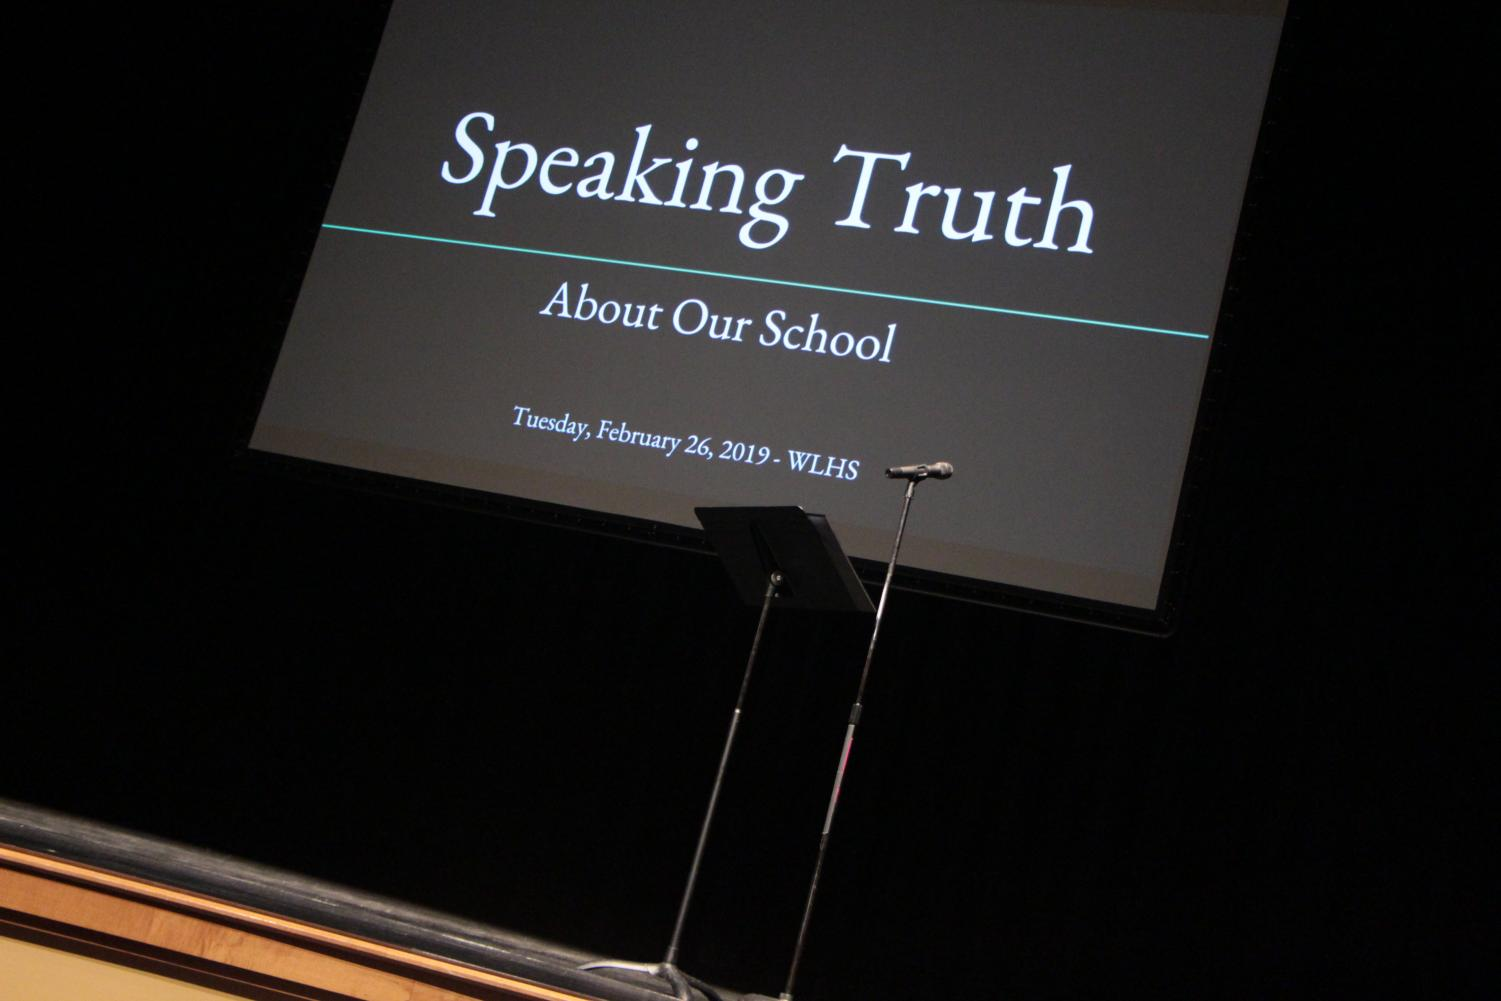 The+%22Speaking+Truth%22+forum%2C+held+Feb.+26%2C+allows+students+to+voice+their+experiences+at+West+Linn+High+School.